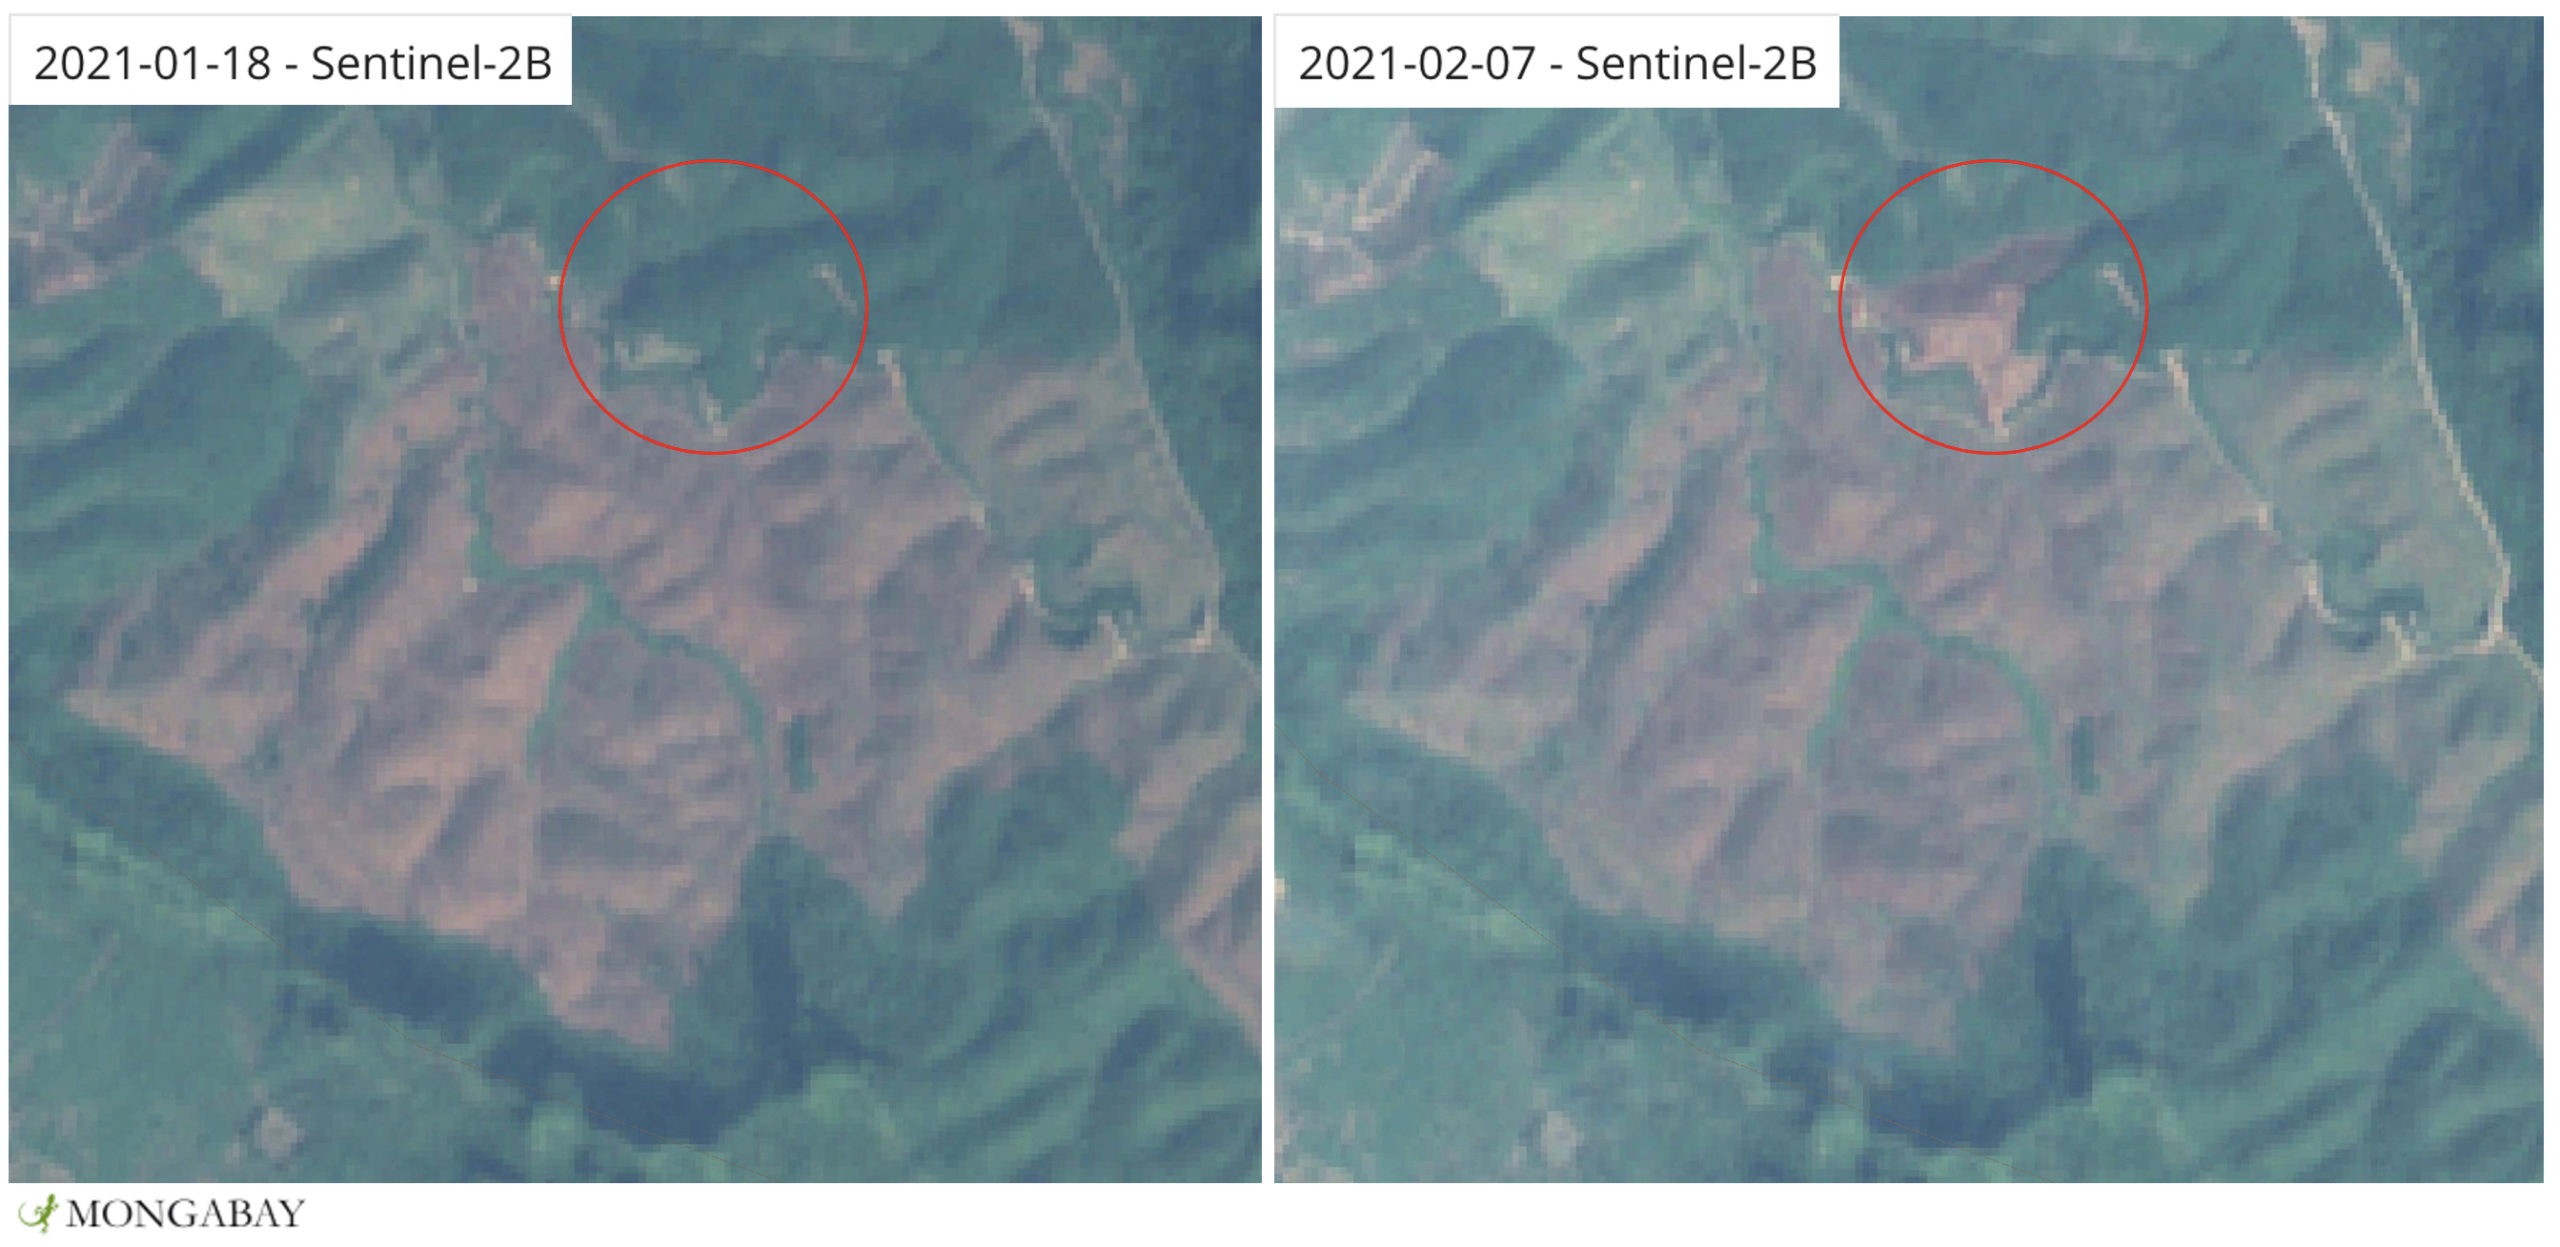 Satellite imagery shows an area of recent forest loss in an area just north of Van Long Nature Reserve that Tilo Nadler and other conservationists are hoping will be turned into a reserve in 2021 or 2022.